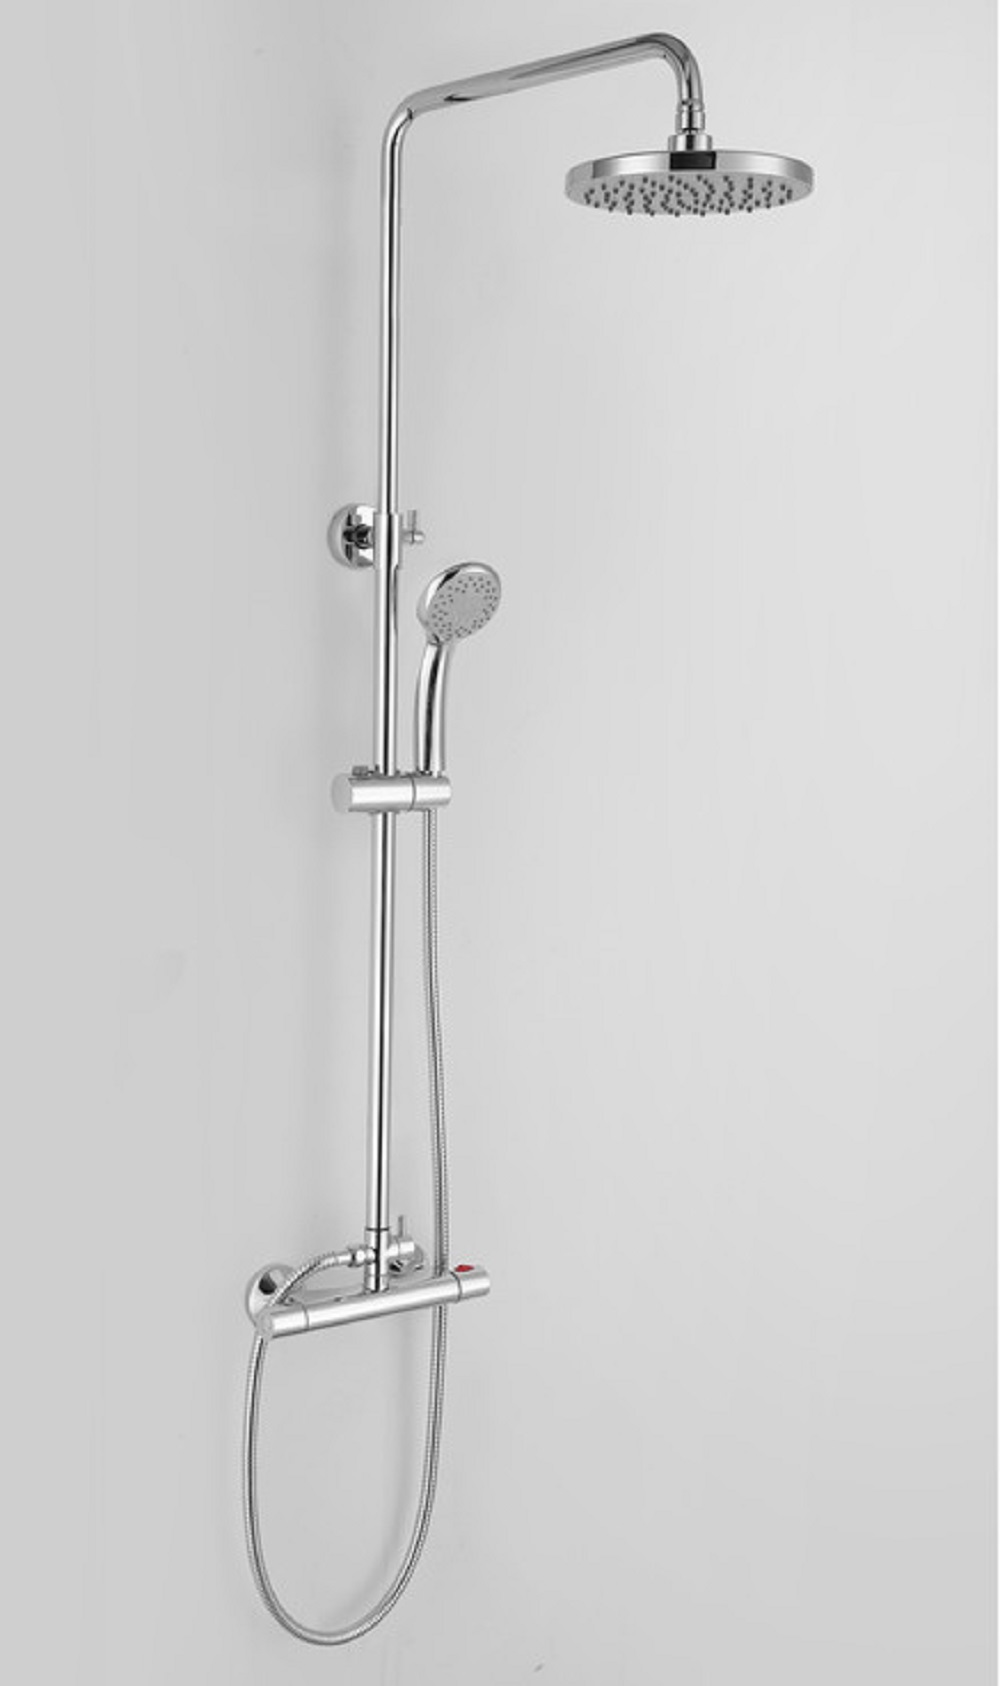 Round Telescopic Thermostatic Mixer Bar Shower With 200mm 8 Inch Overhead Hand Held Shower Heads